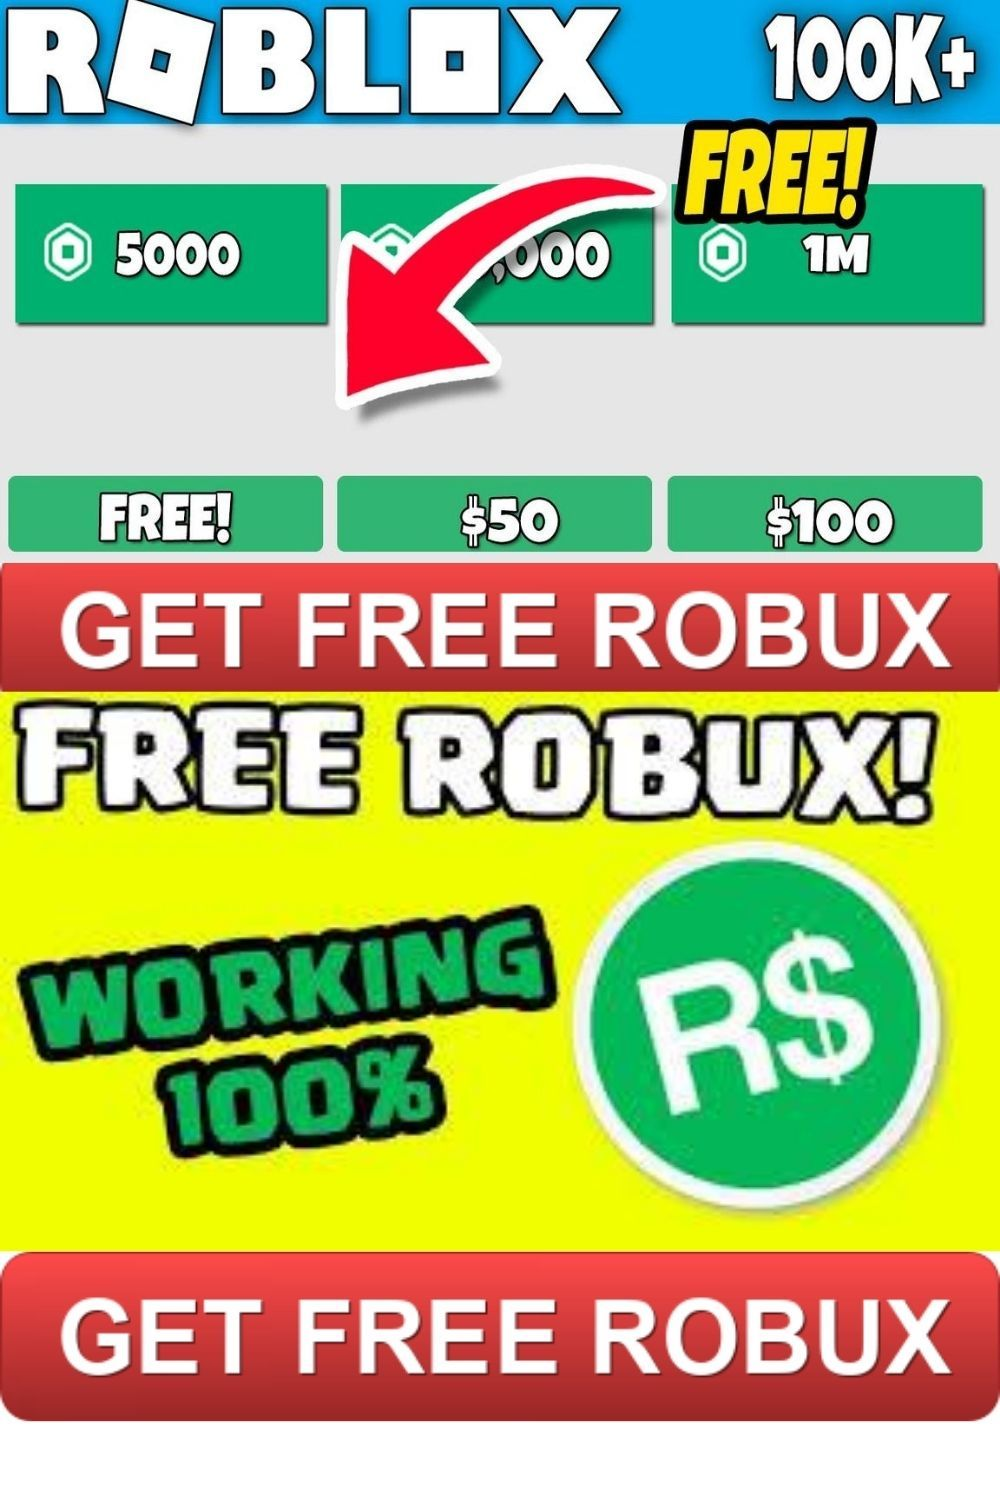 Free robux without verification free robux gift card in